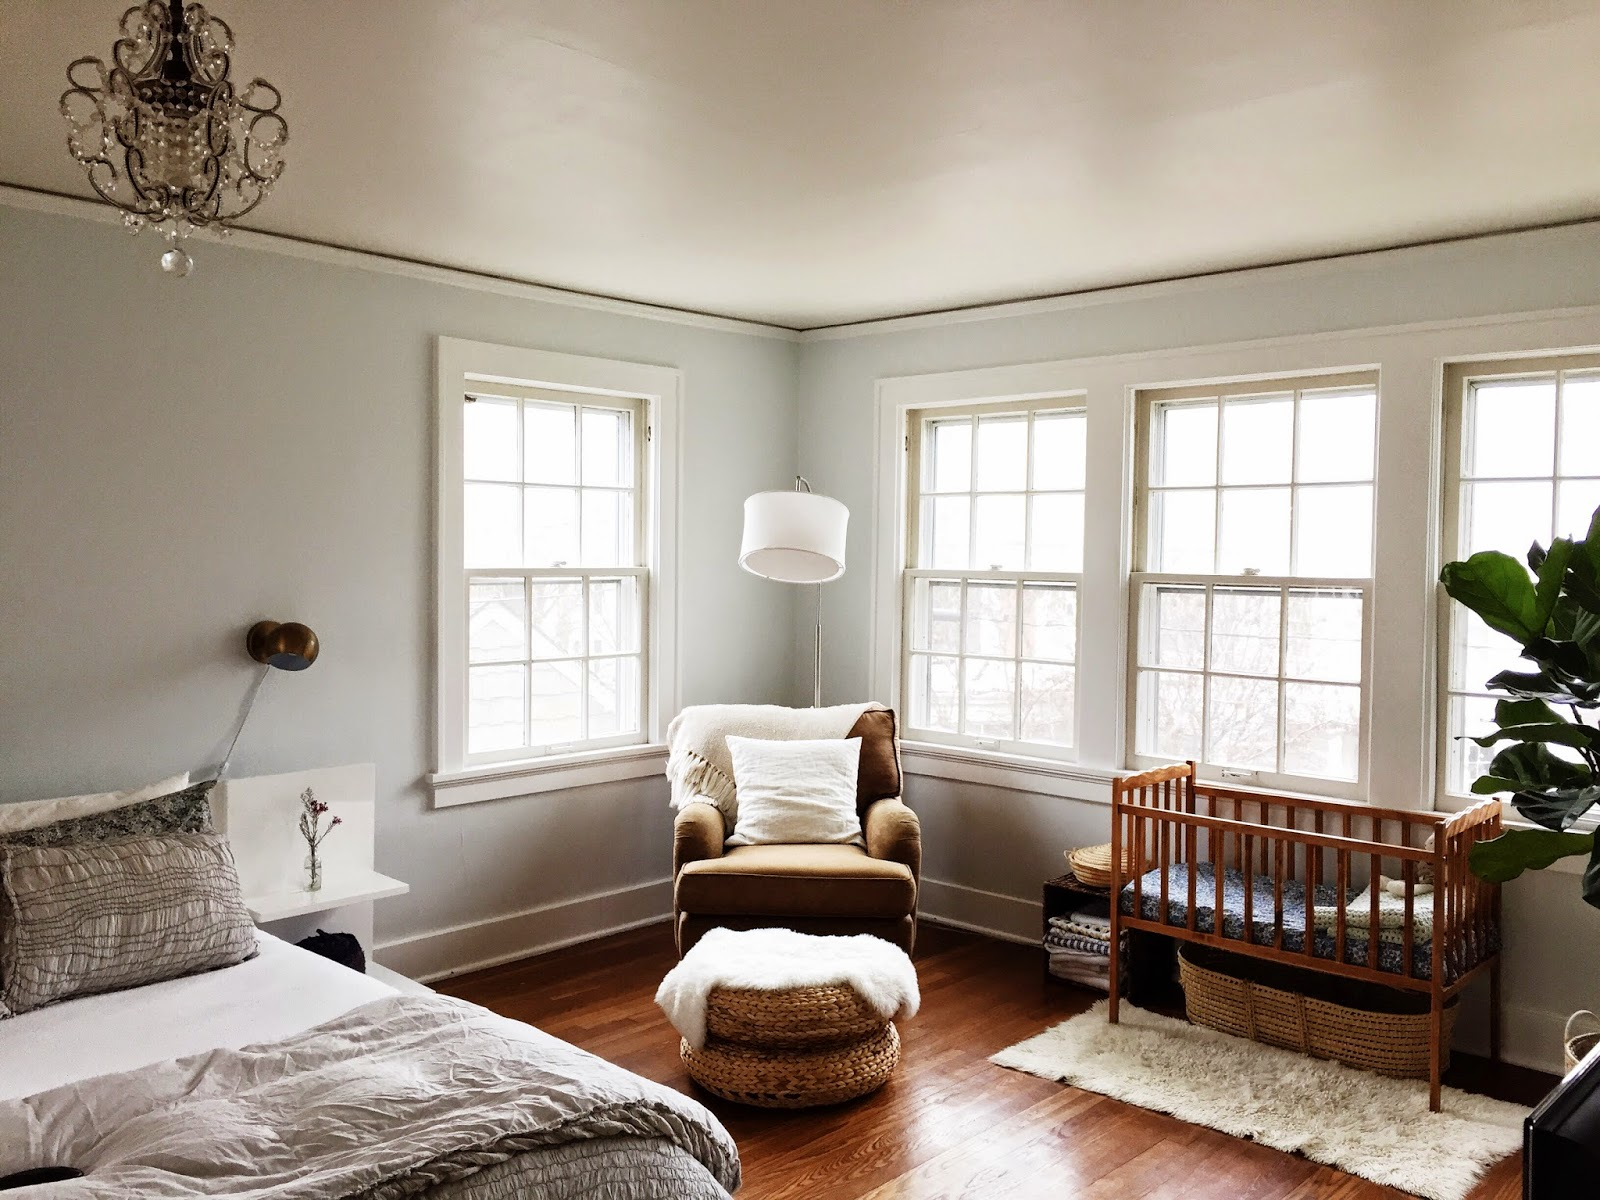 Homestead Shared Nursery Master Bedroom Tour It 39 S The Little Things Bloglovin